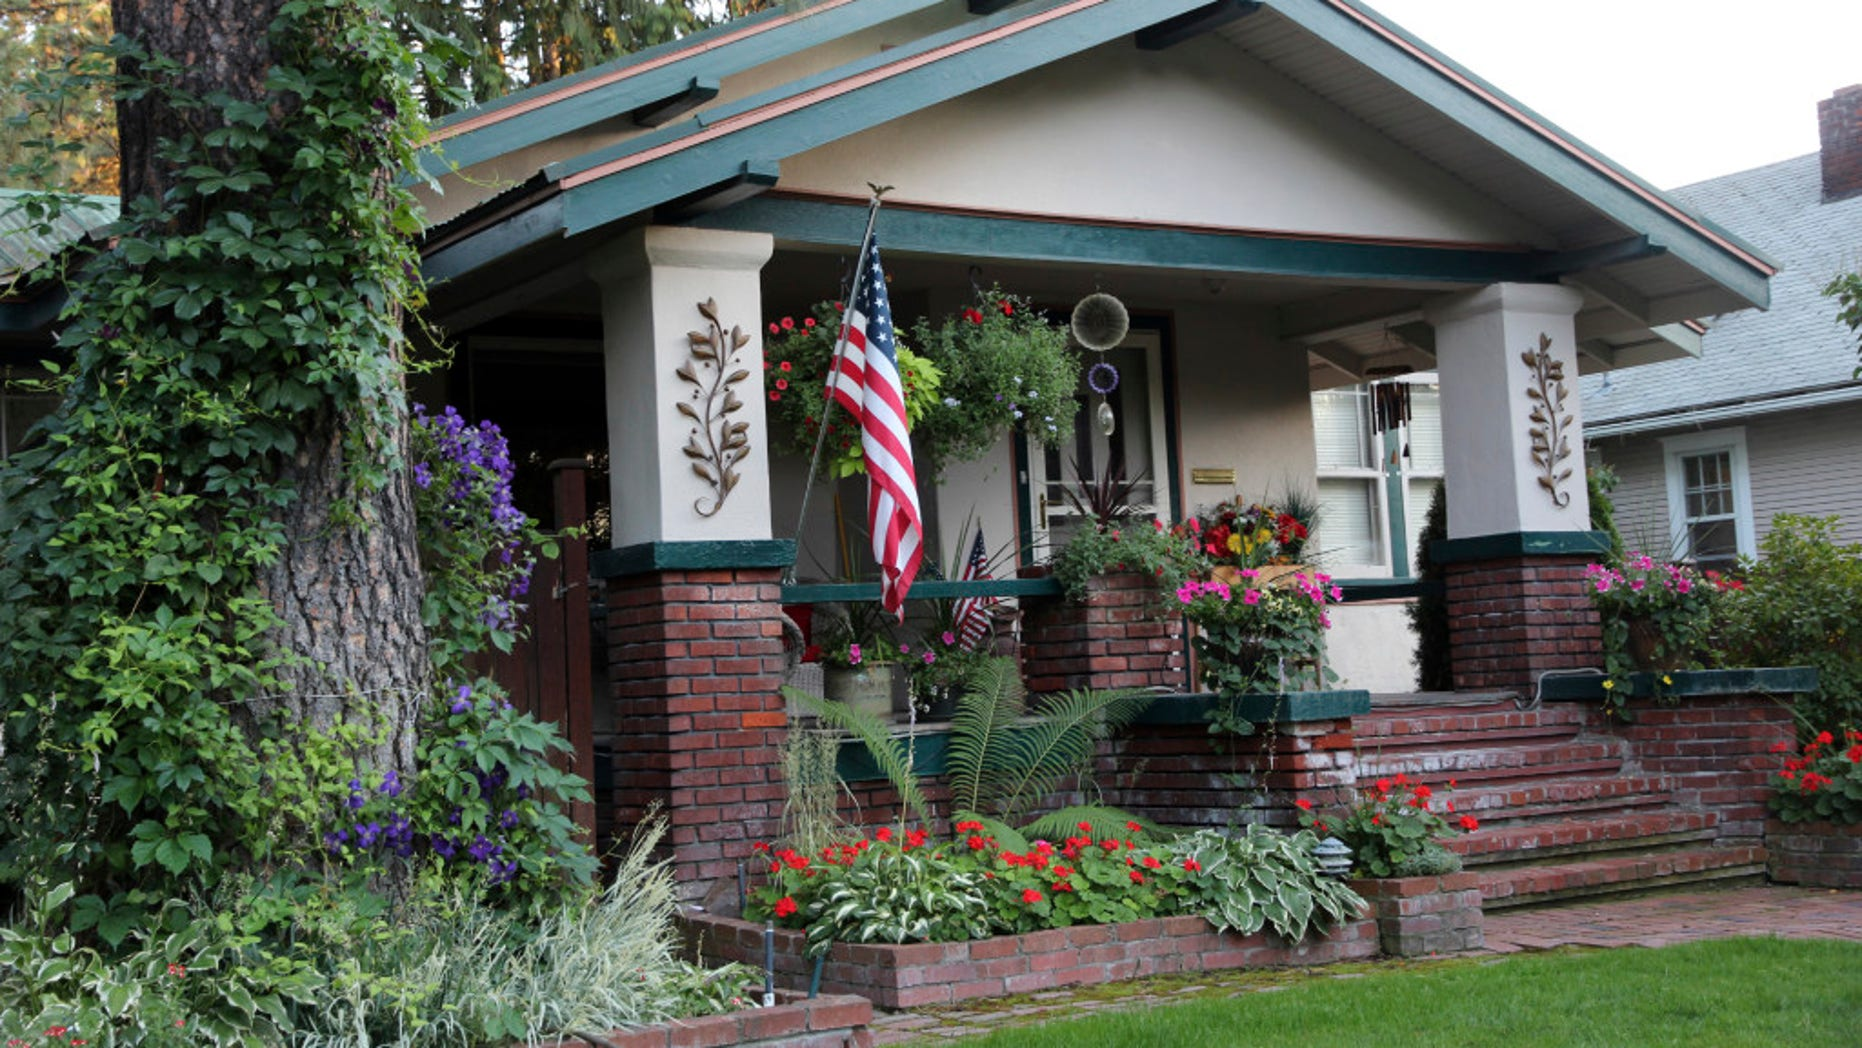 A Craftsman house displays the flag and flowers in front.